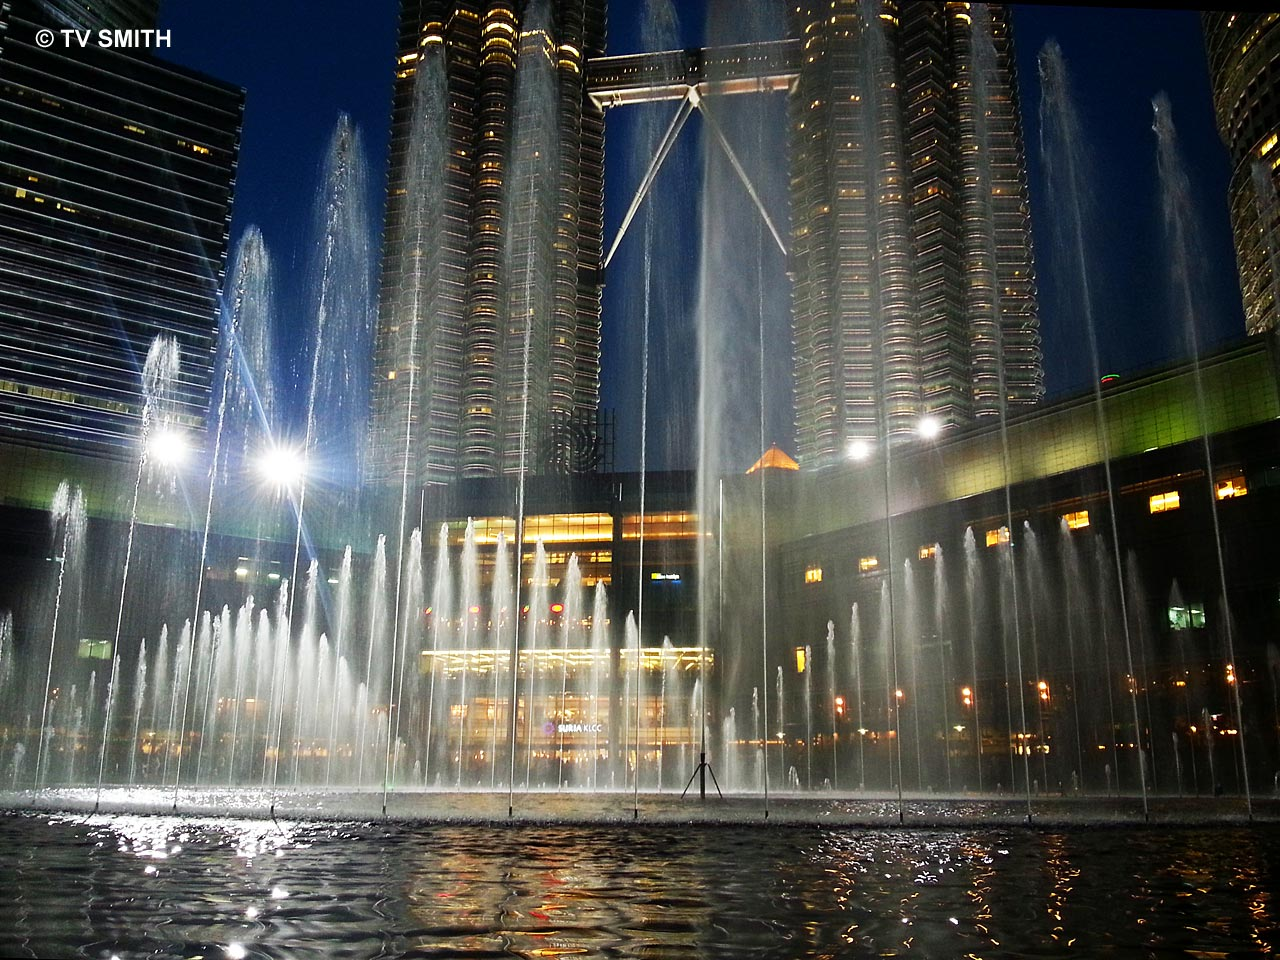 KLCC's Musical Fountain photograped with the Galaxy S3